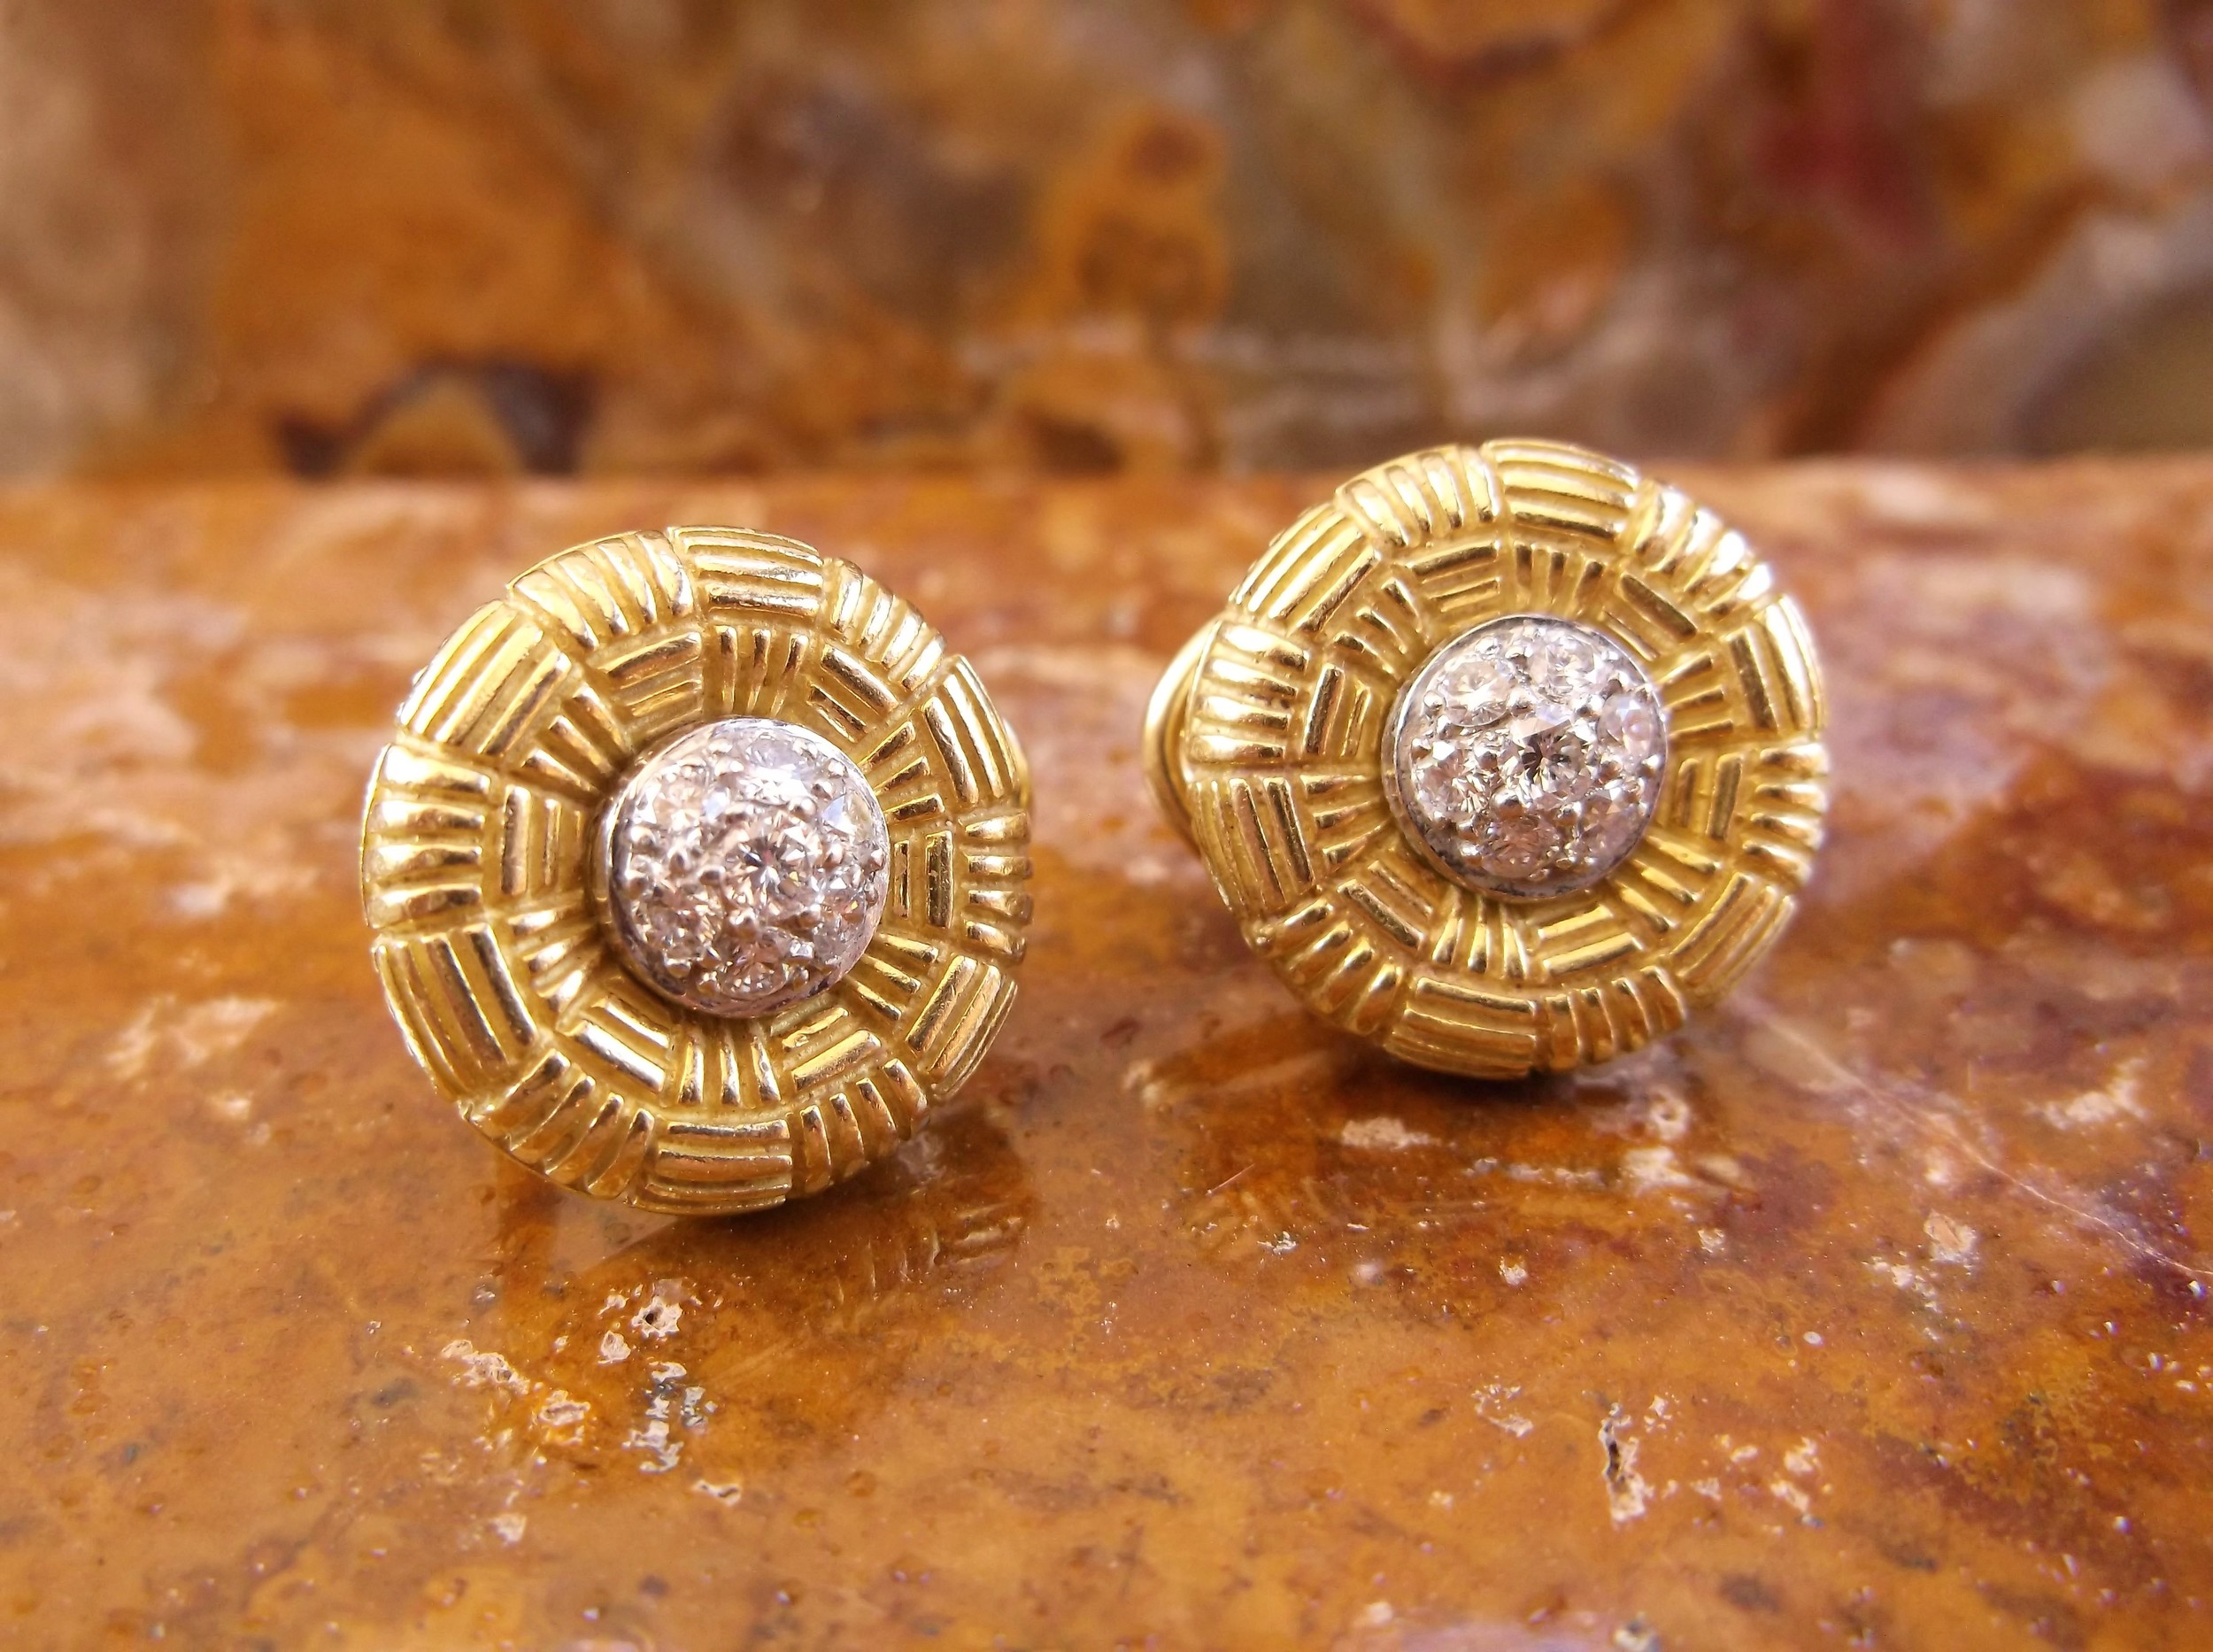 SOLD - The perfect statement stud! 18K yellow gold and diamond cluster earrings with 0.22 carats of diamonds in each.